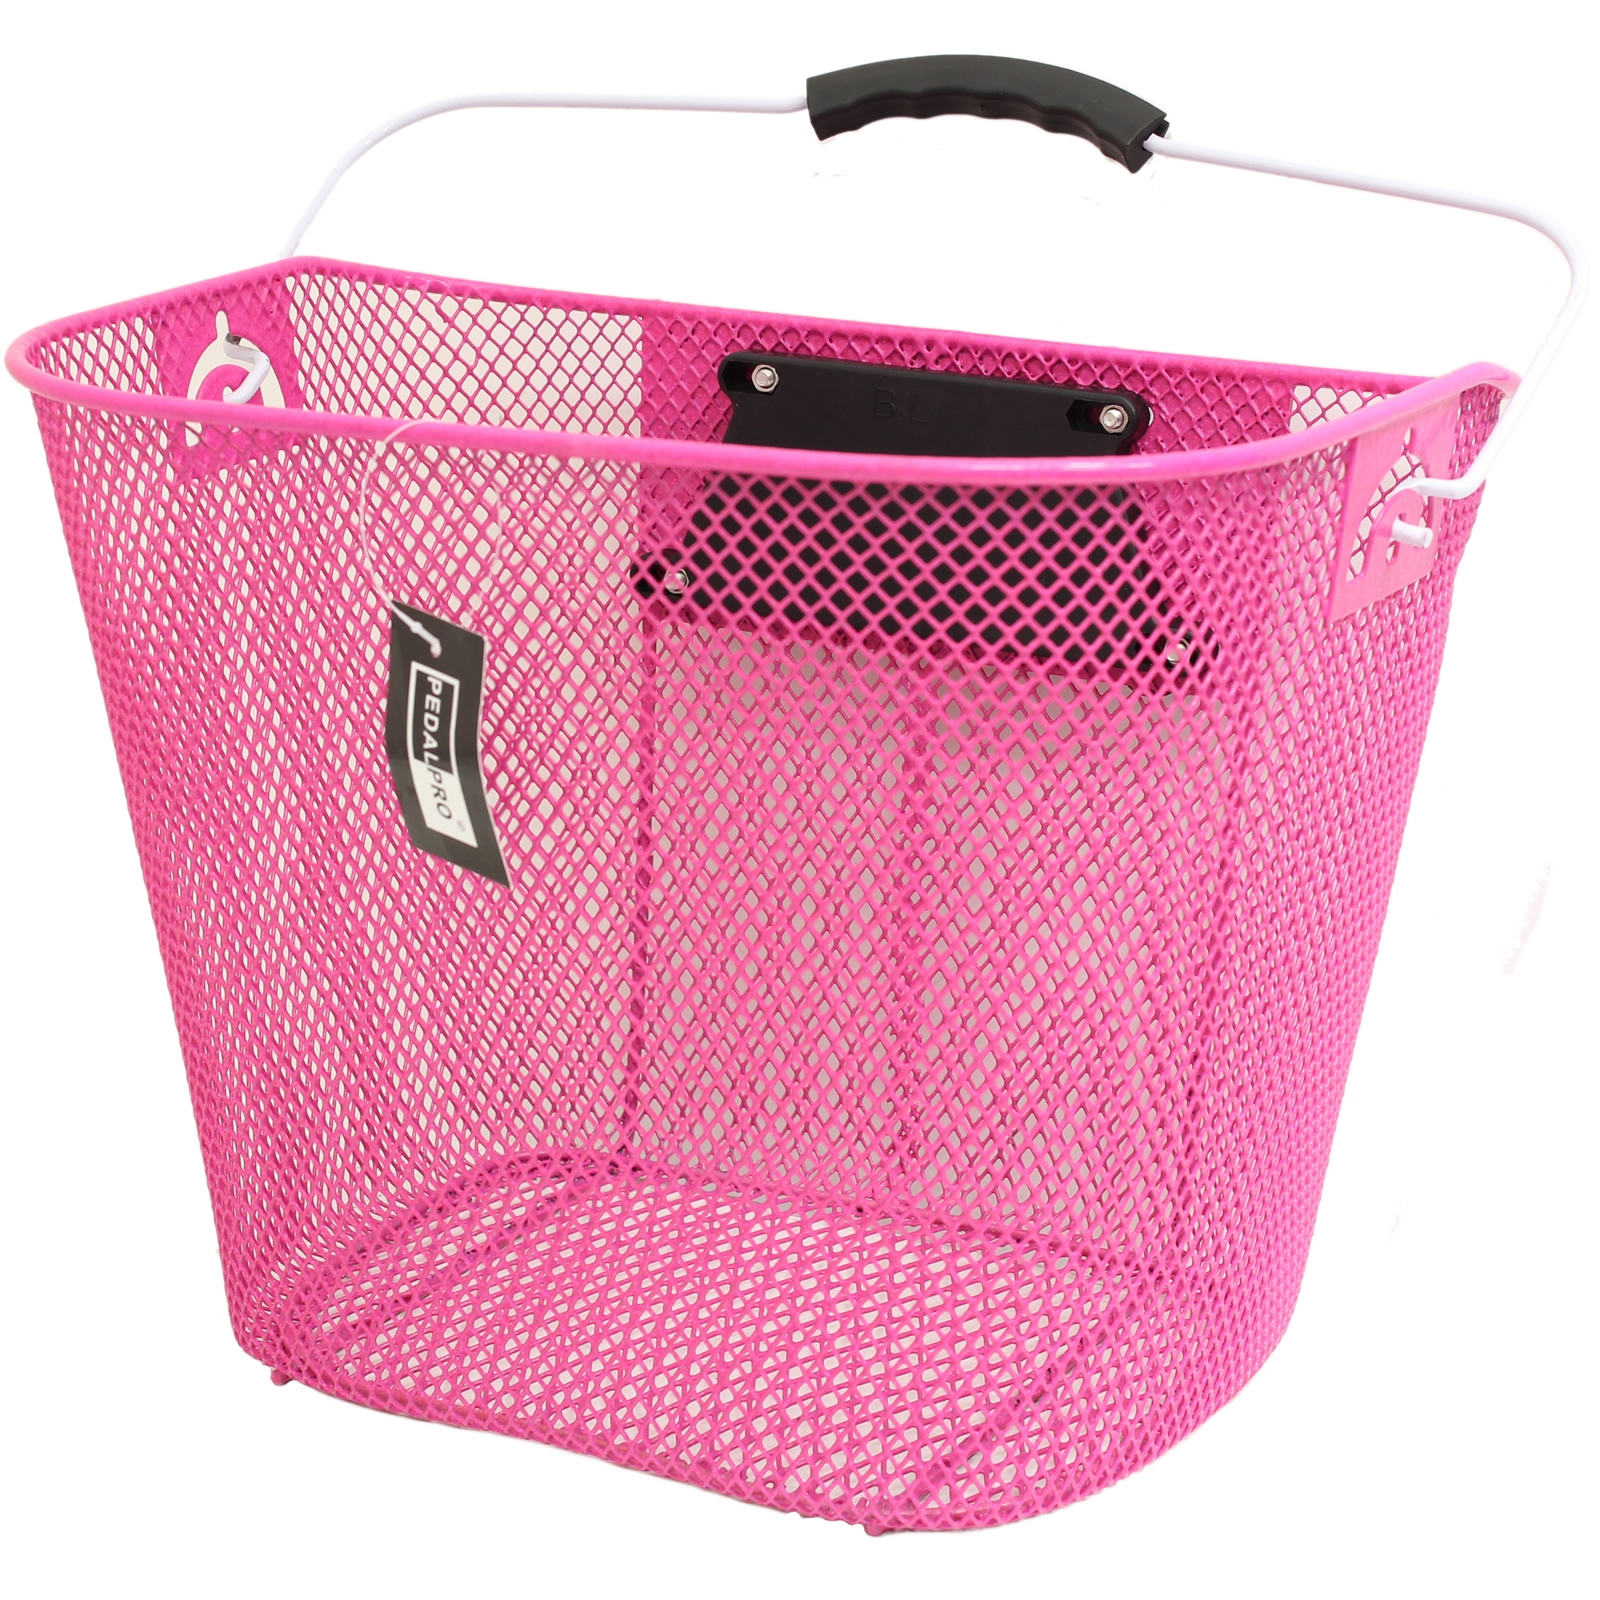 PedalPro-Bicycle-Front-Handlebar-Basket-with-Carry-Handle-Shopping-Cycle-Bike